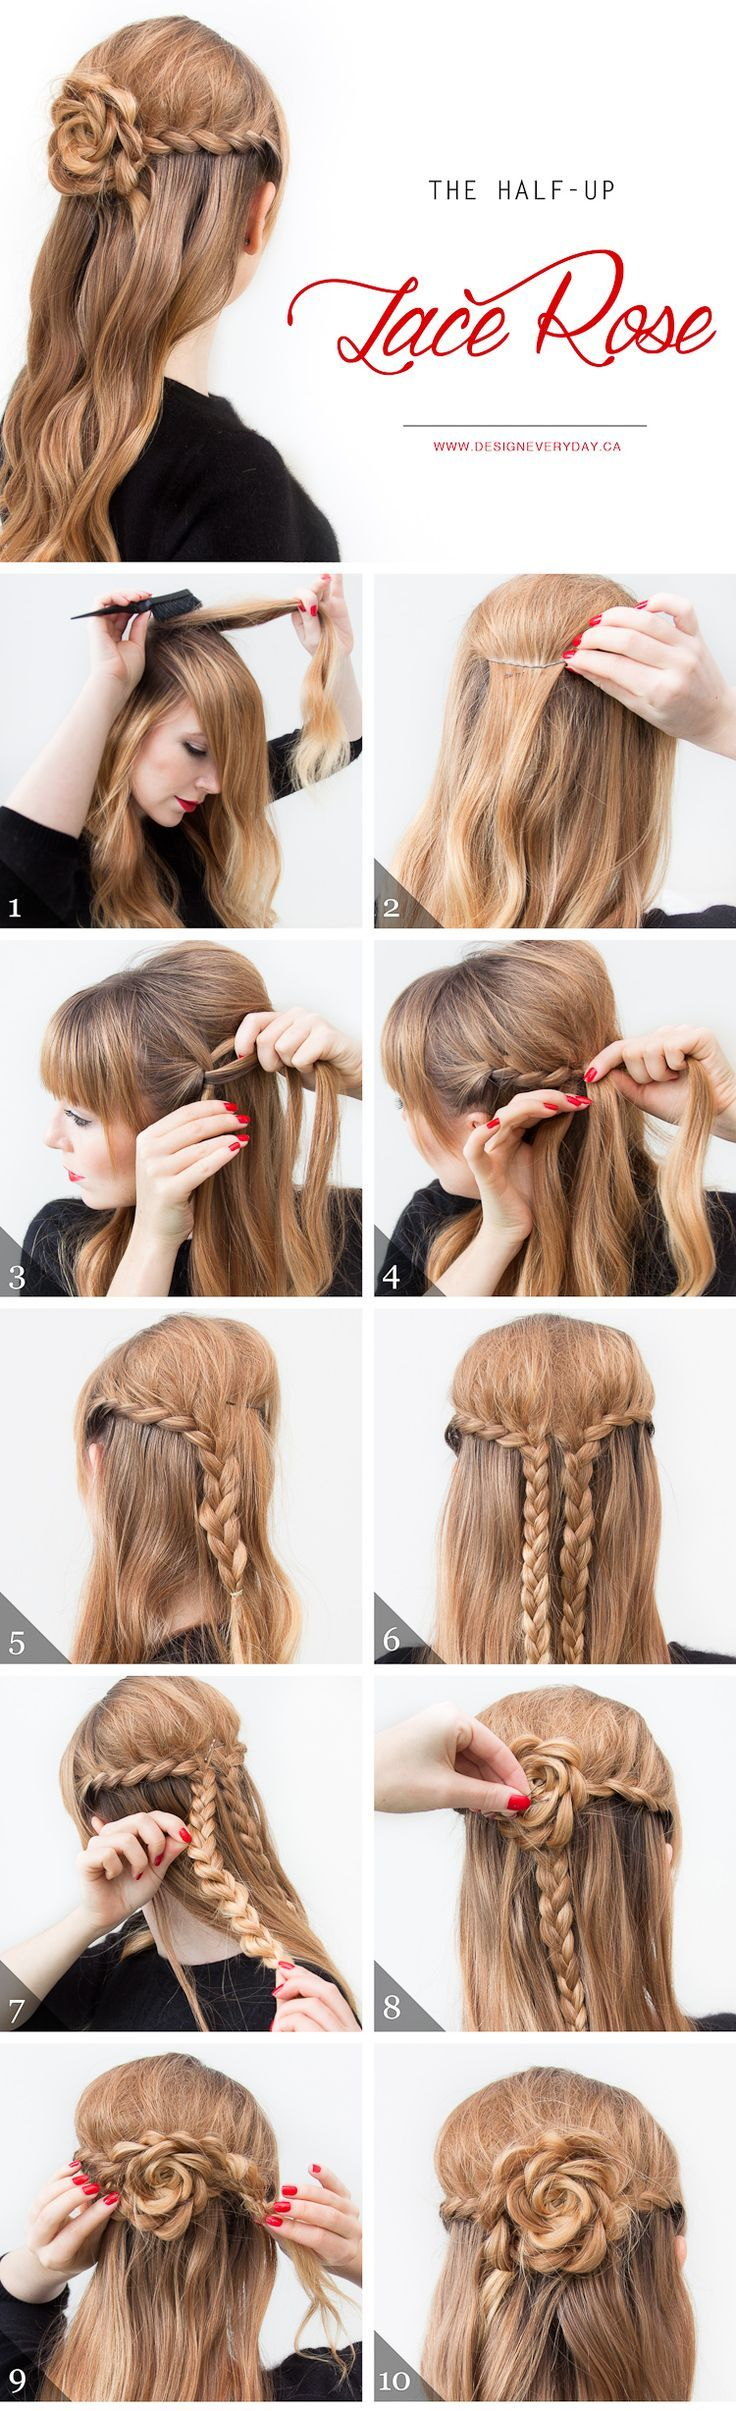 Easy step by step hair tutorials you must see and try to copy good